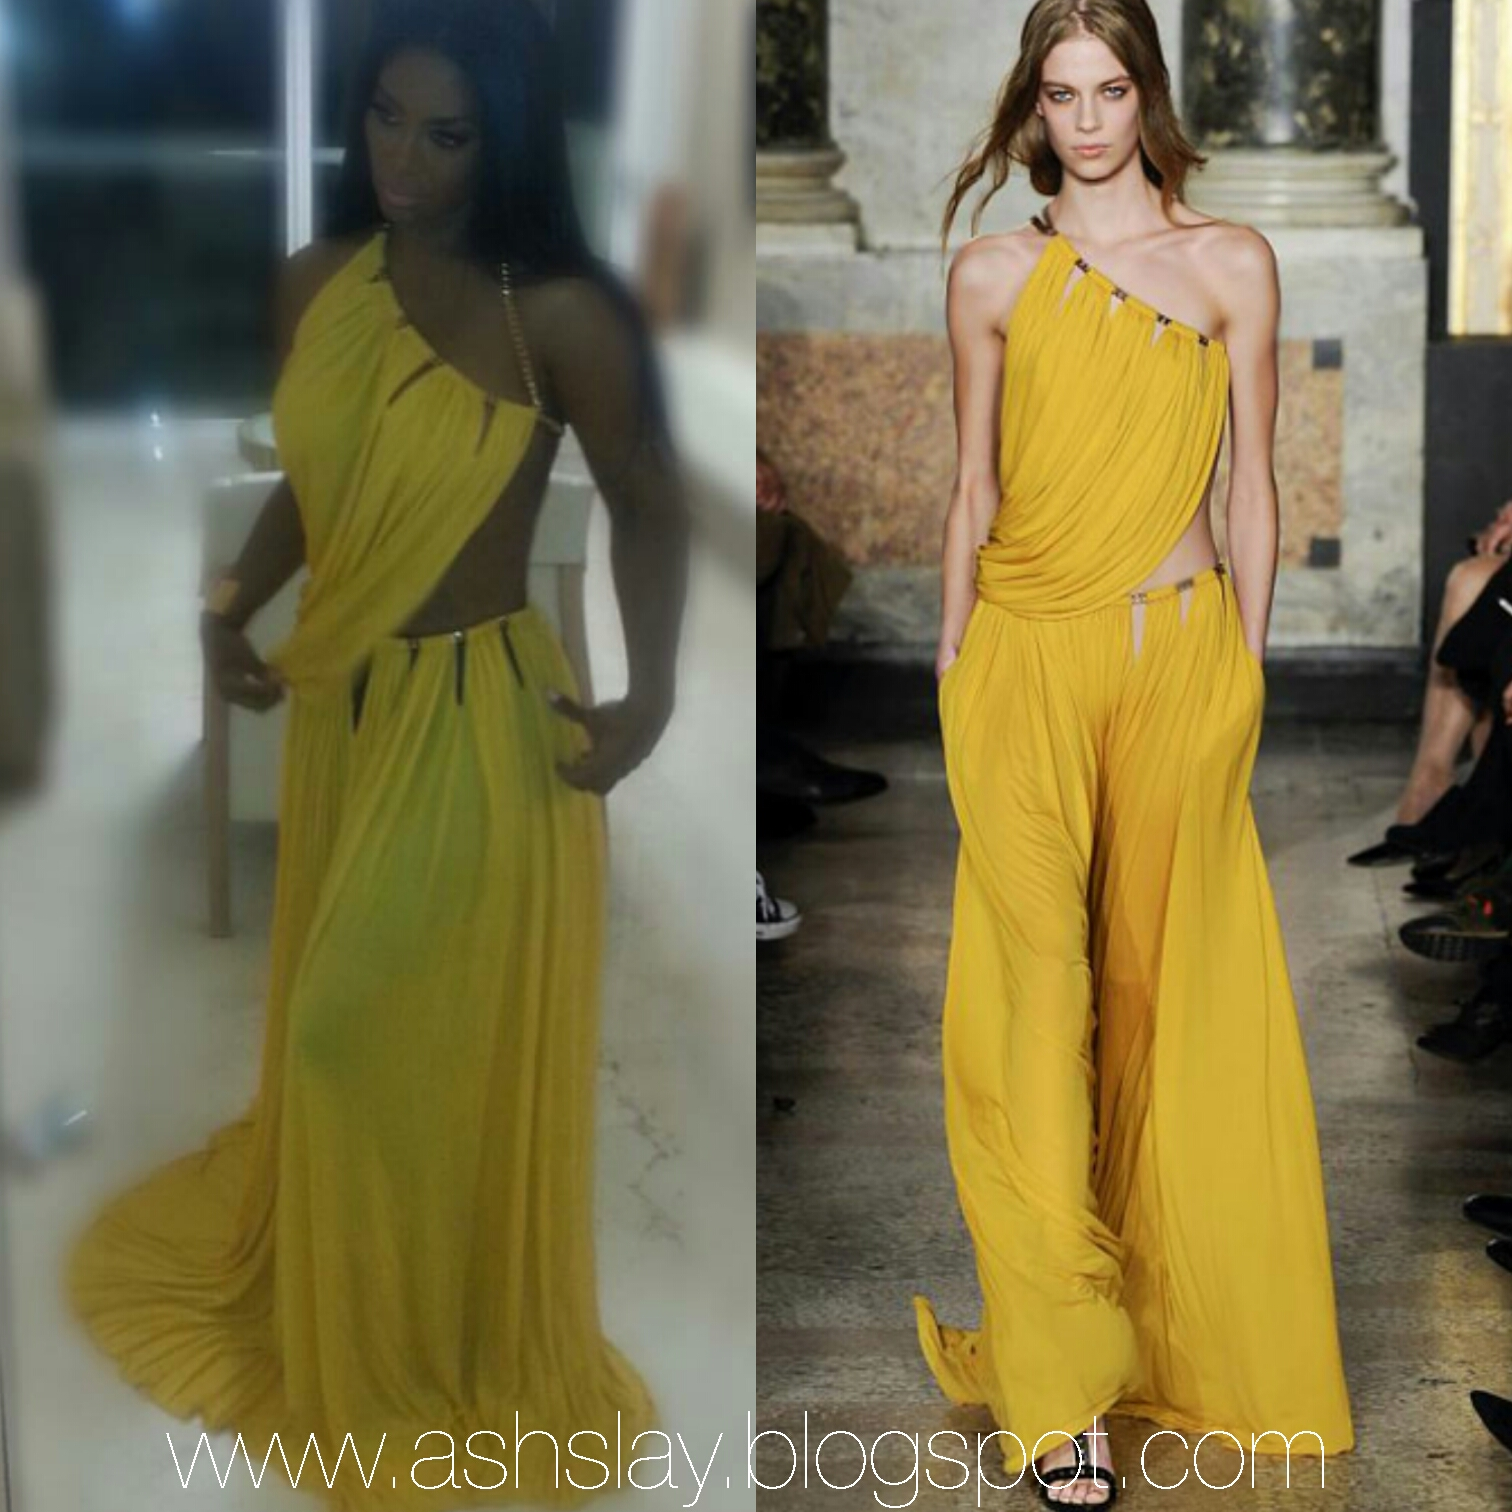 Style Breakdown Rhoa Kenya Moore Wearing Emilio Pucci Dress